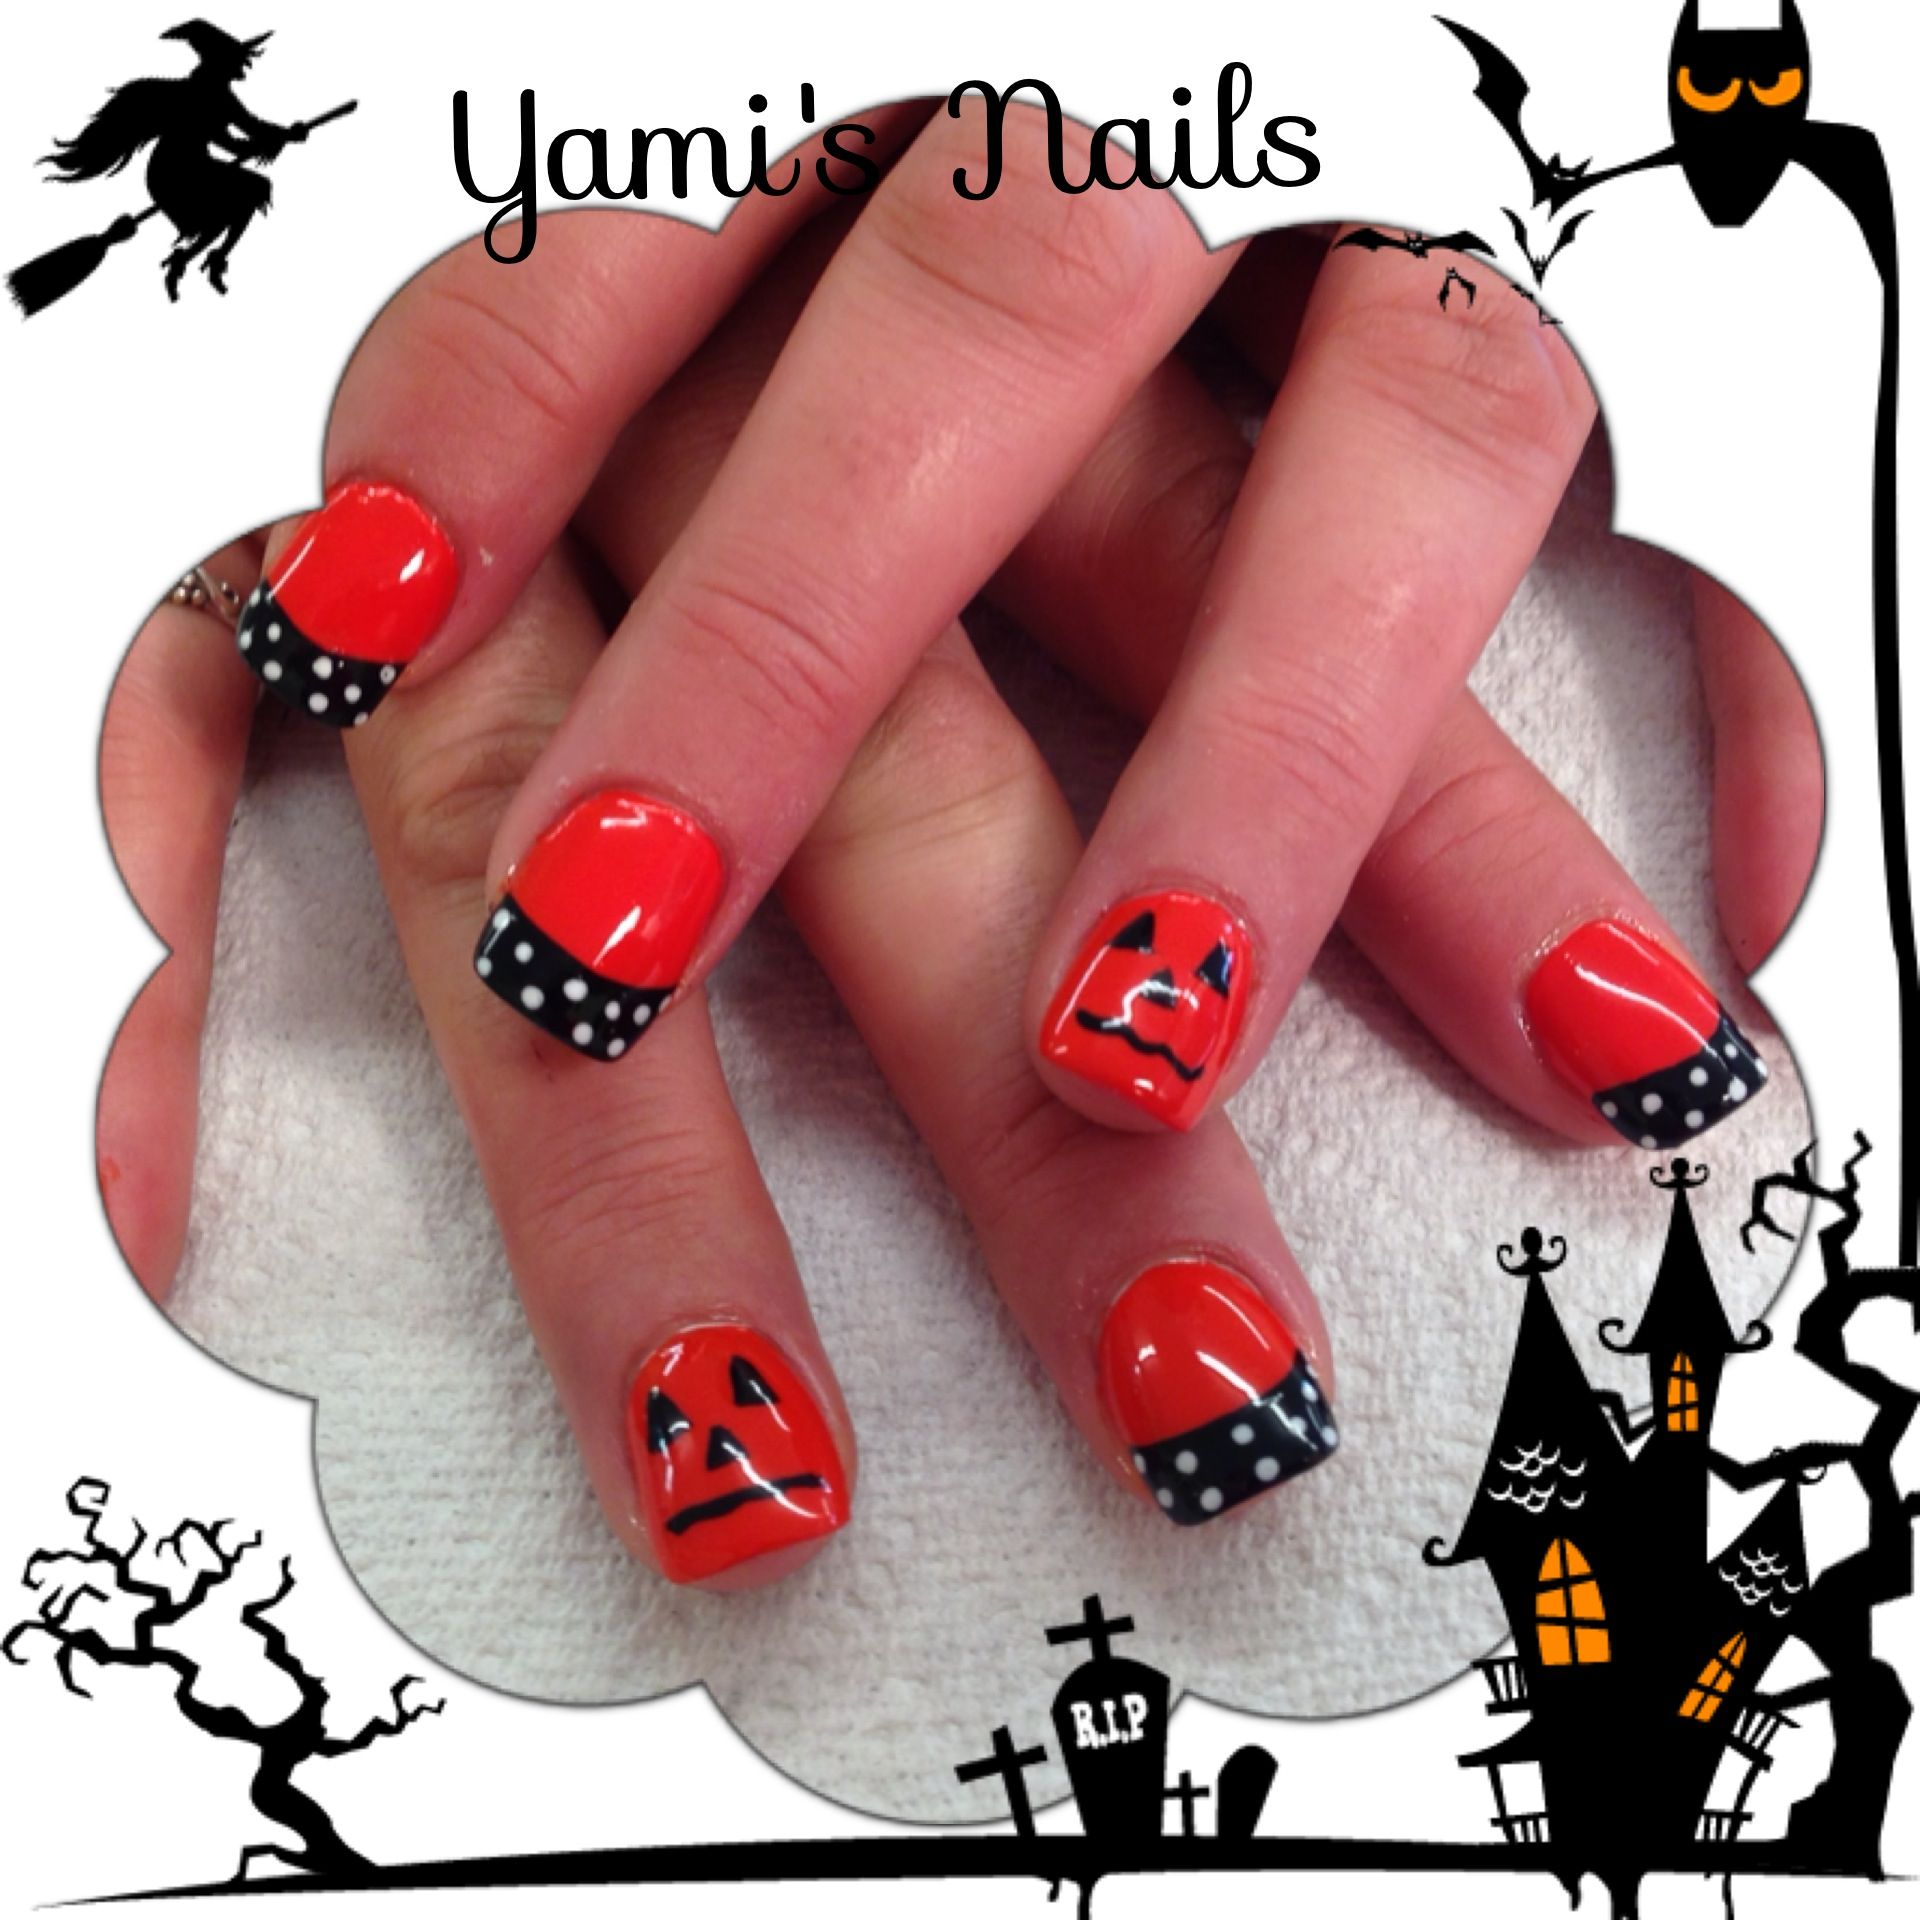 Halloween nail art with shellac best ideas about fall toe nails on view images halloween nail art shellac nails original prinsesfo Choice Image